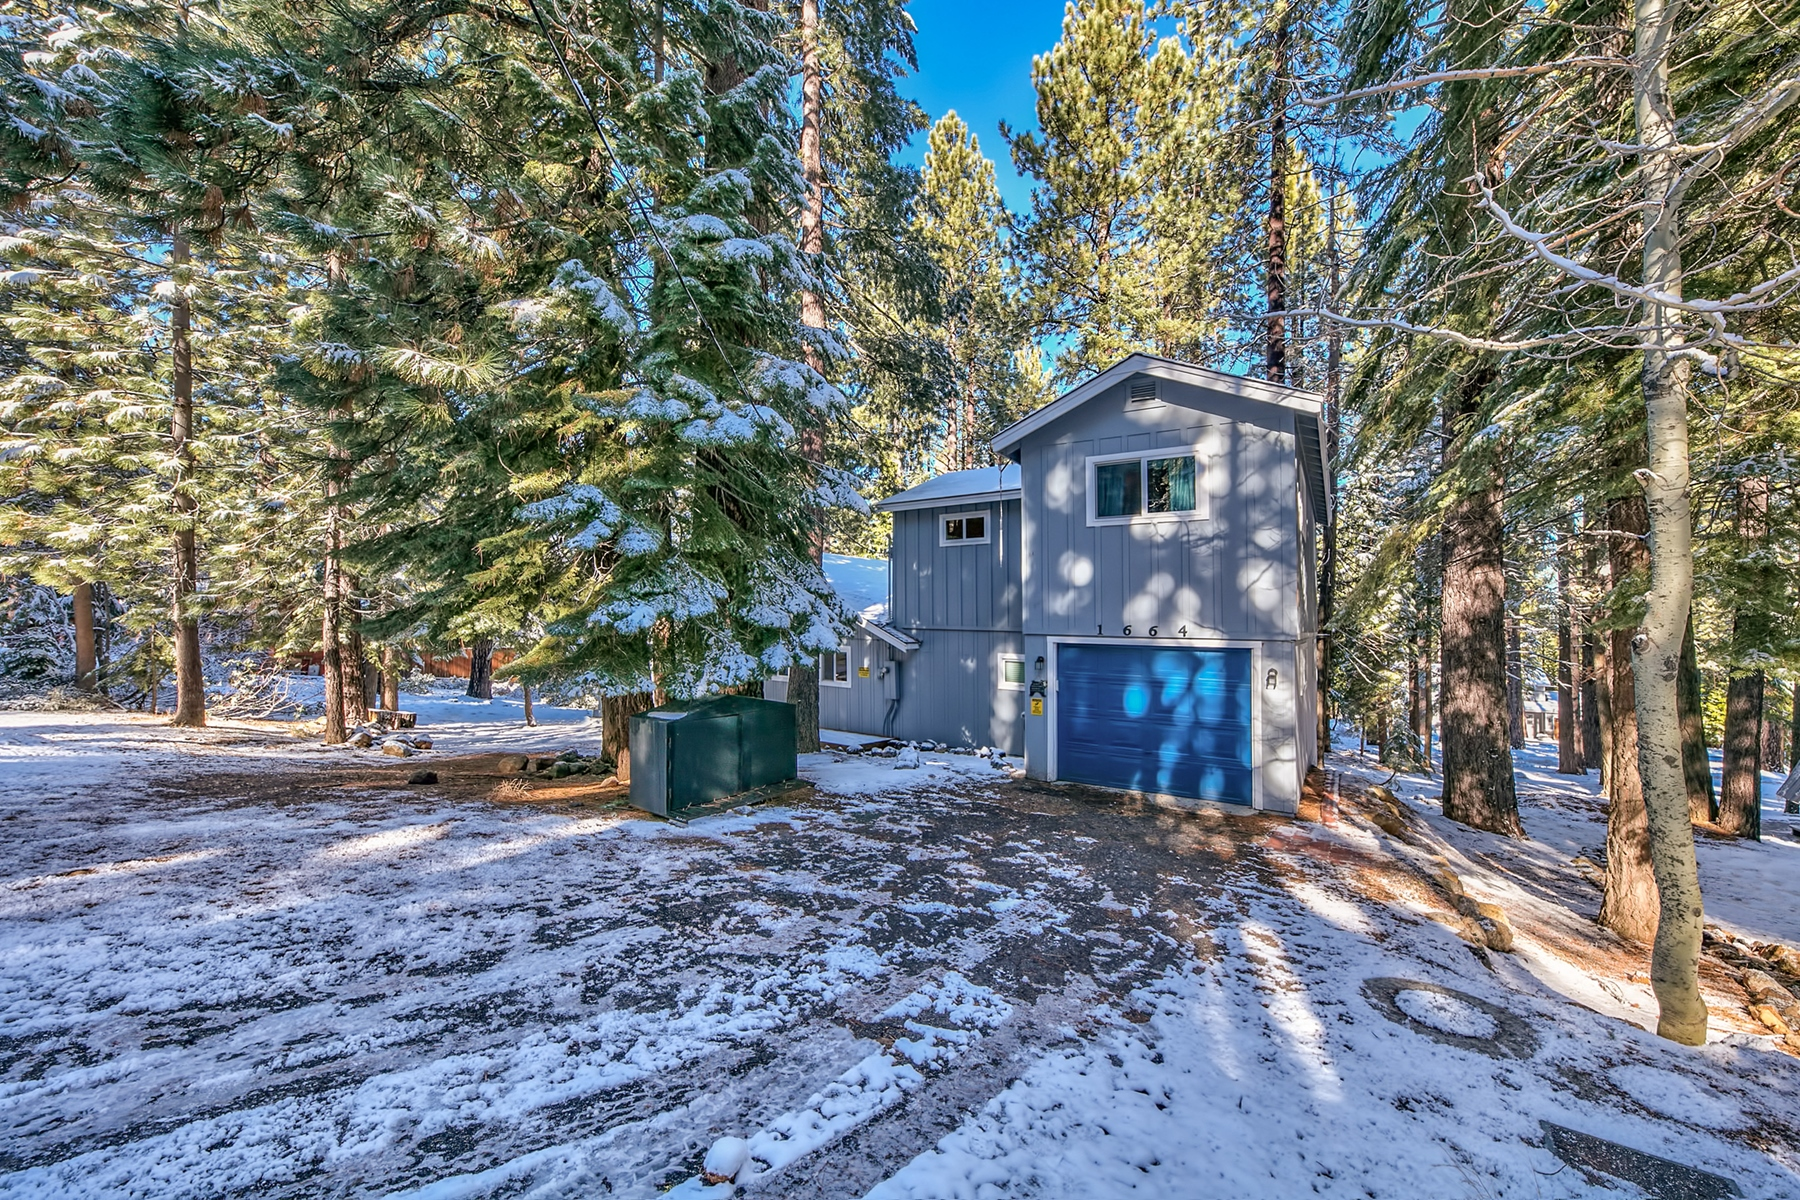 Additional photo for property listing at 1664 Pawnee Drive South Lake Tahoe CA, 96150 1664 Pawnee Drive South Lake Tahoe, California 96150 United States